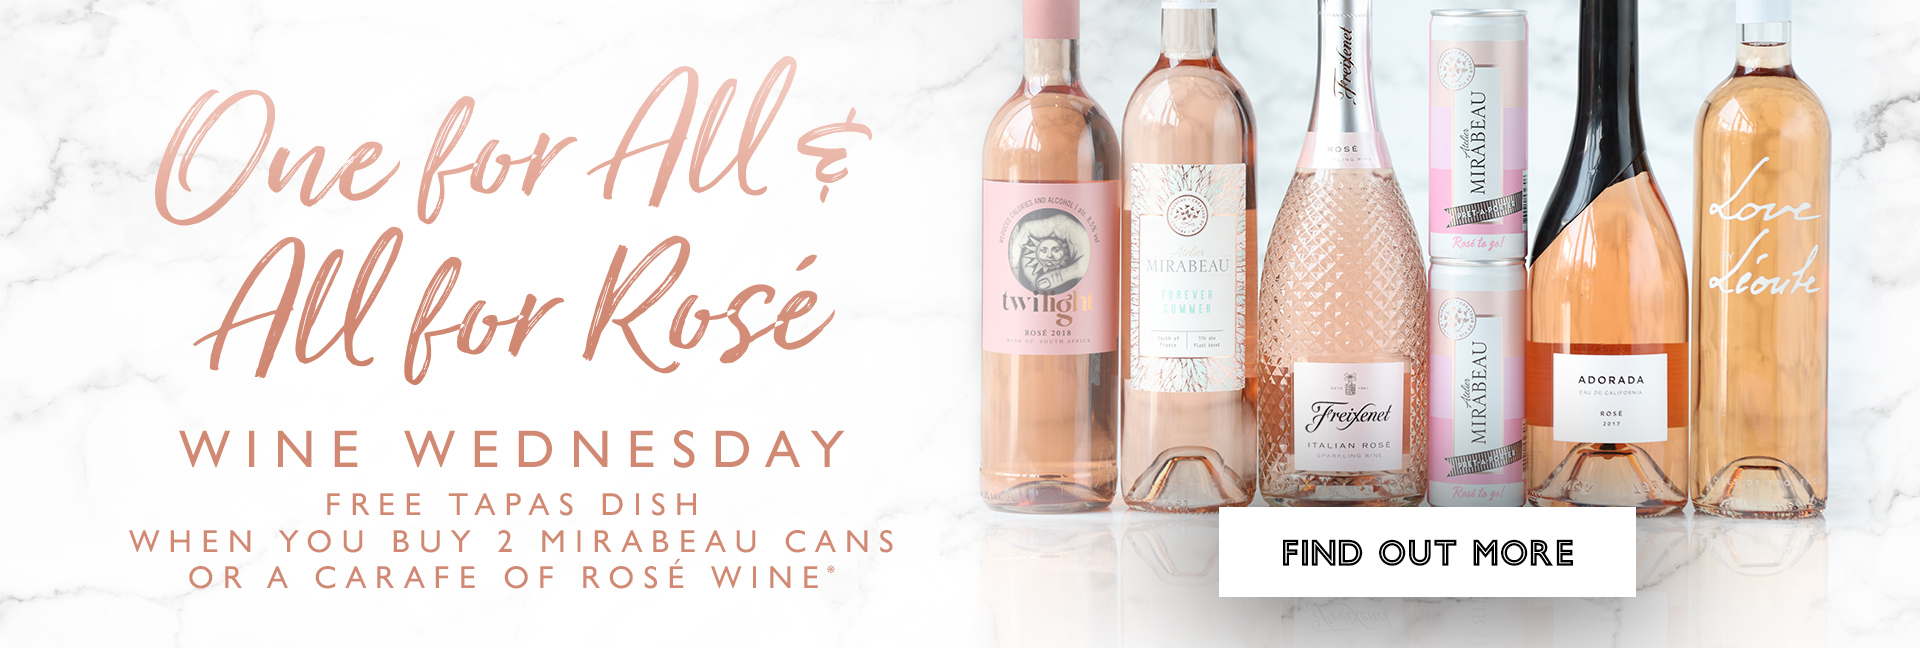 Wine Wednesdays at All Bar One Norwich